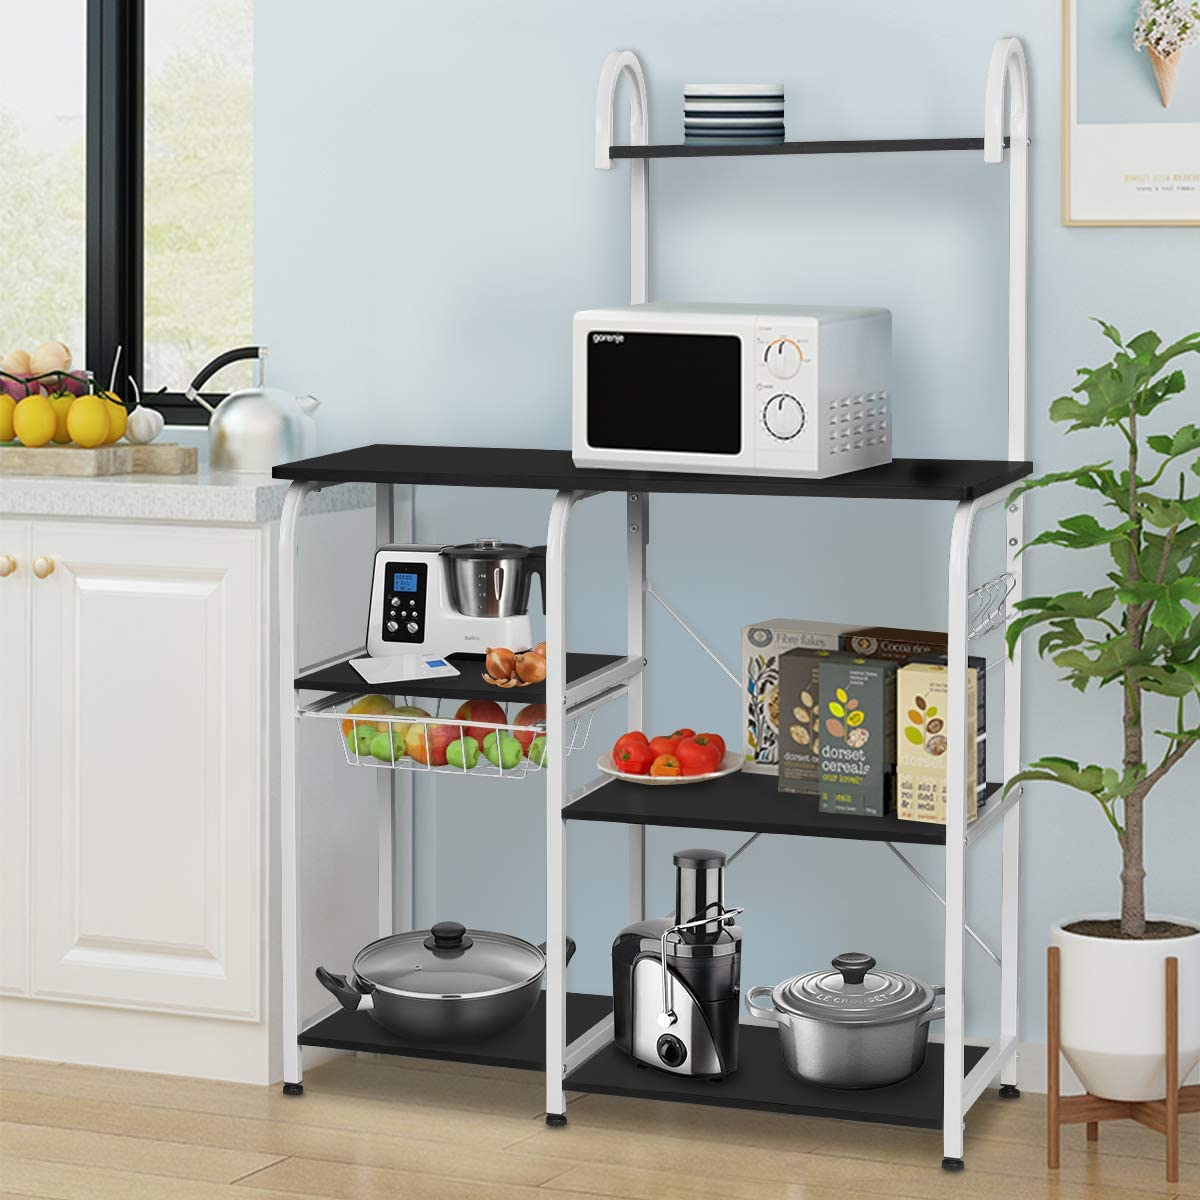 kingso 4 tier accent kitchen cart with storage microwave multilevel oven stand shelf kitchen island bakers cart rack kitchen table coffee stand work